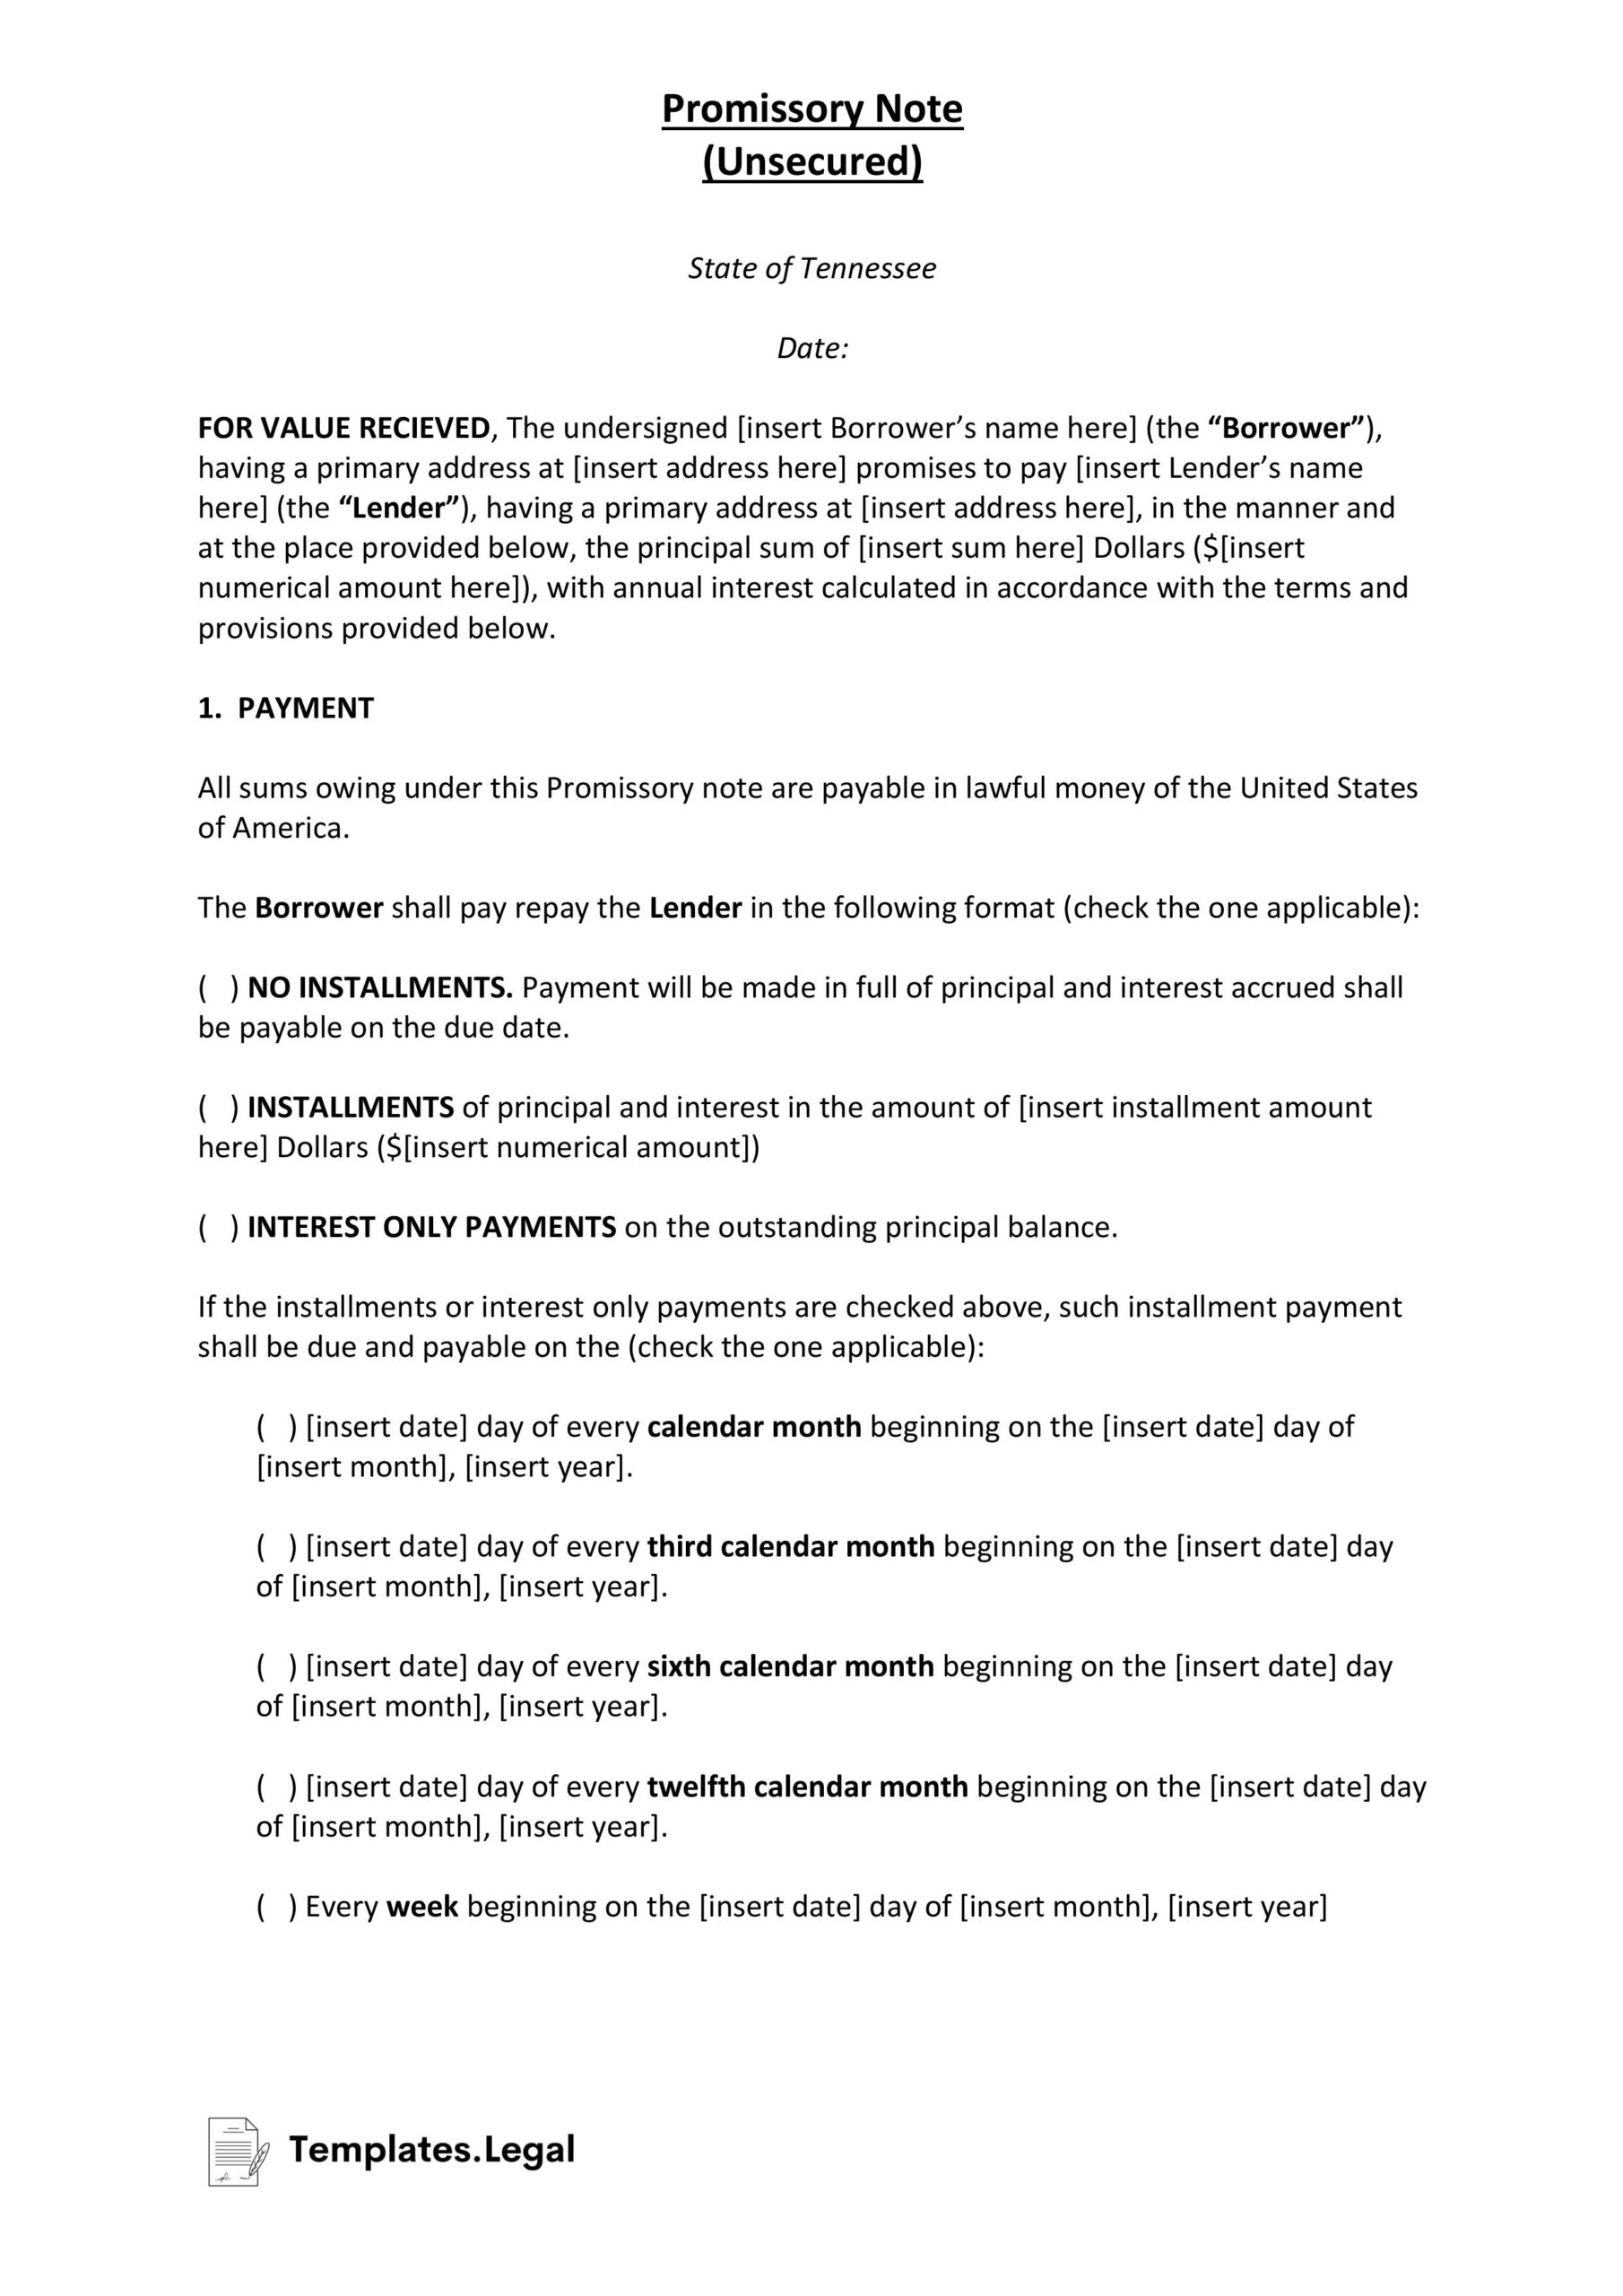 Tennessee Unsecured Promissory Note - Templates.Legal